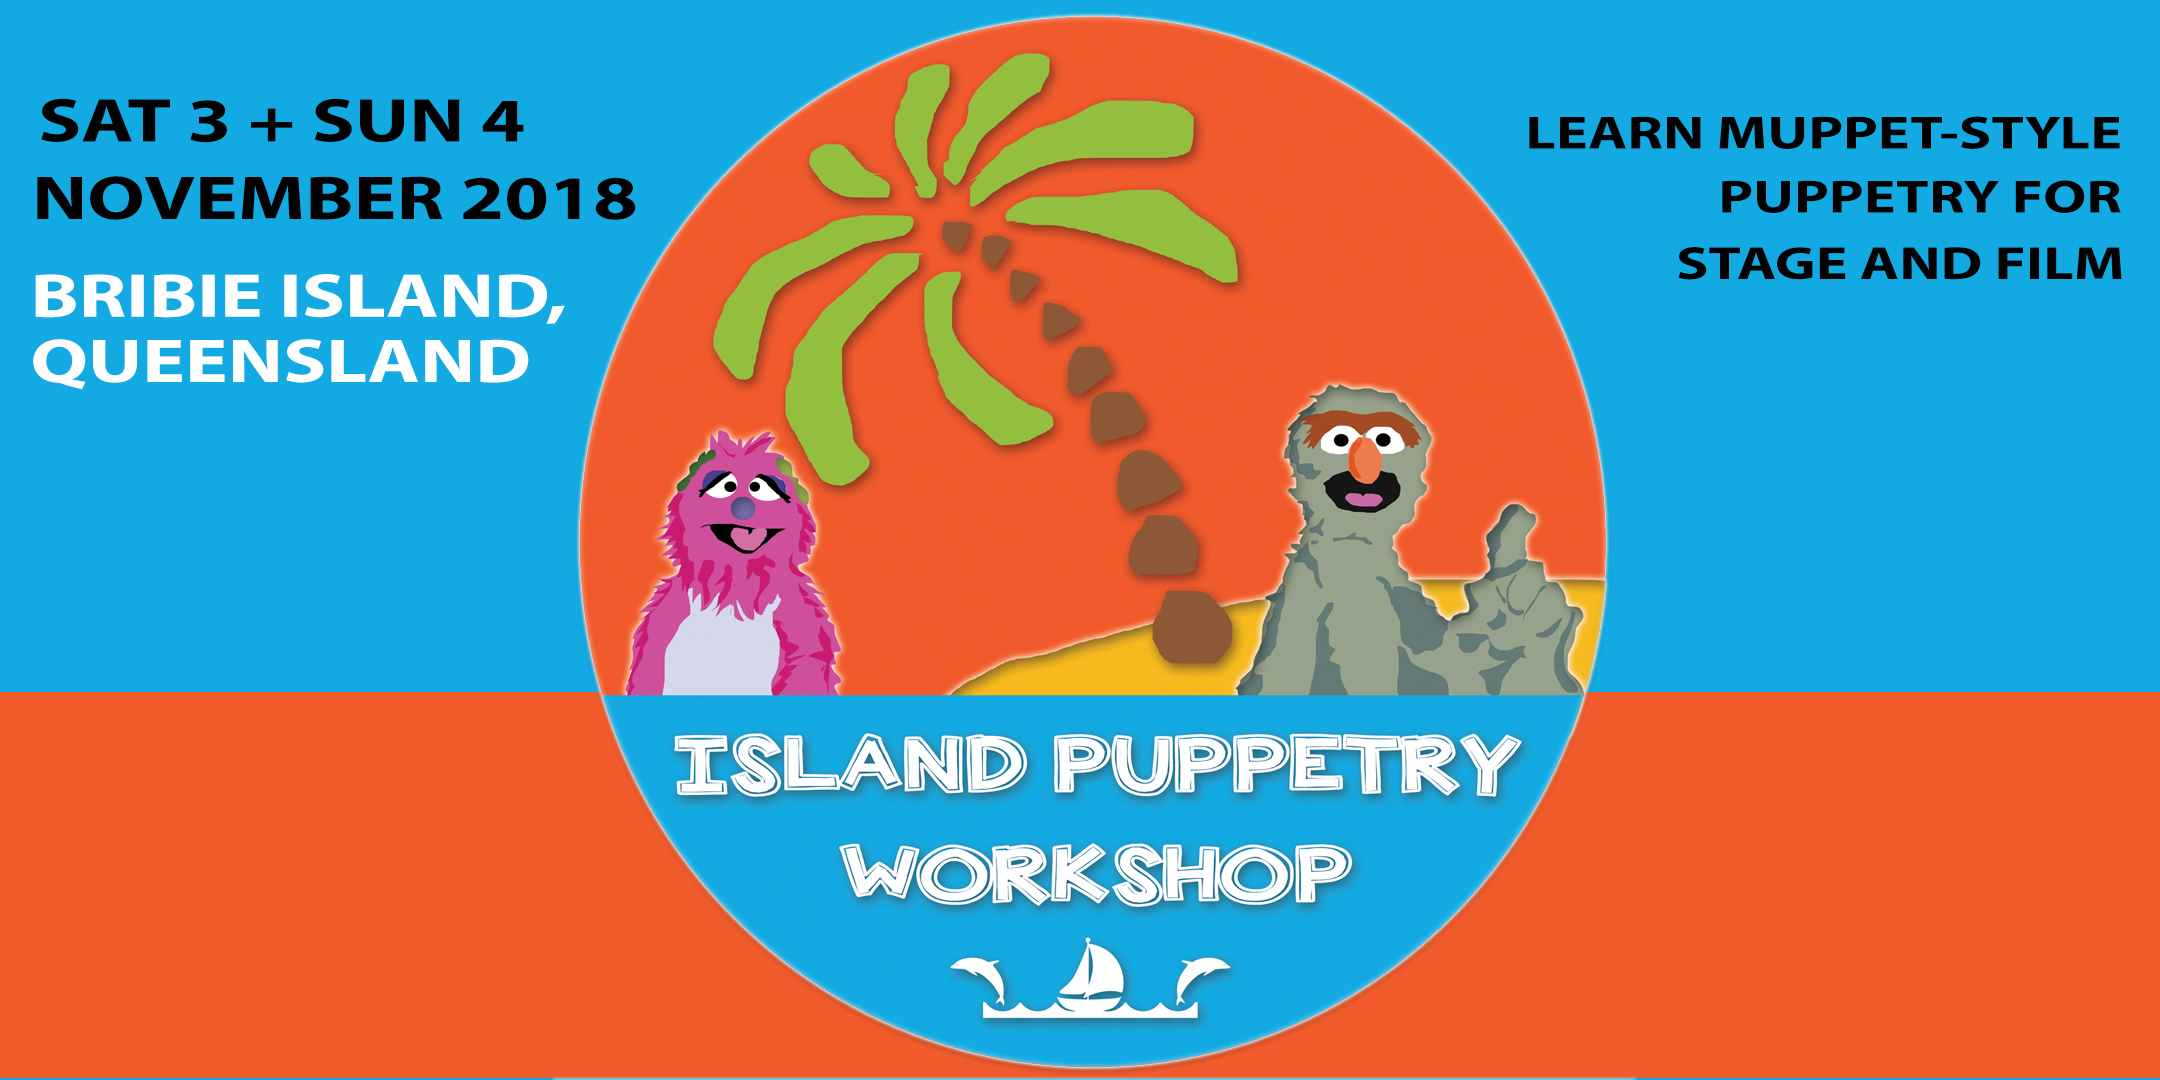 Children's Entertainment, Acting Classes, Theatre Courses, Drama Workshop | Puppet Show, Puppetry Workshops, Puppet Workshop, Puppetry Class, Puppet Class - Island Puppetry Workshop, Bribie Island, QLD, Australia